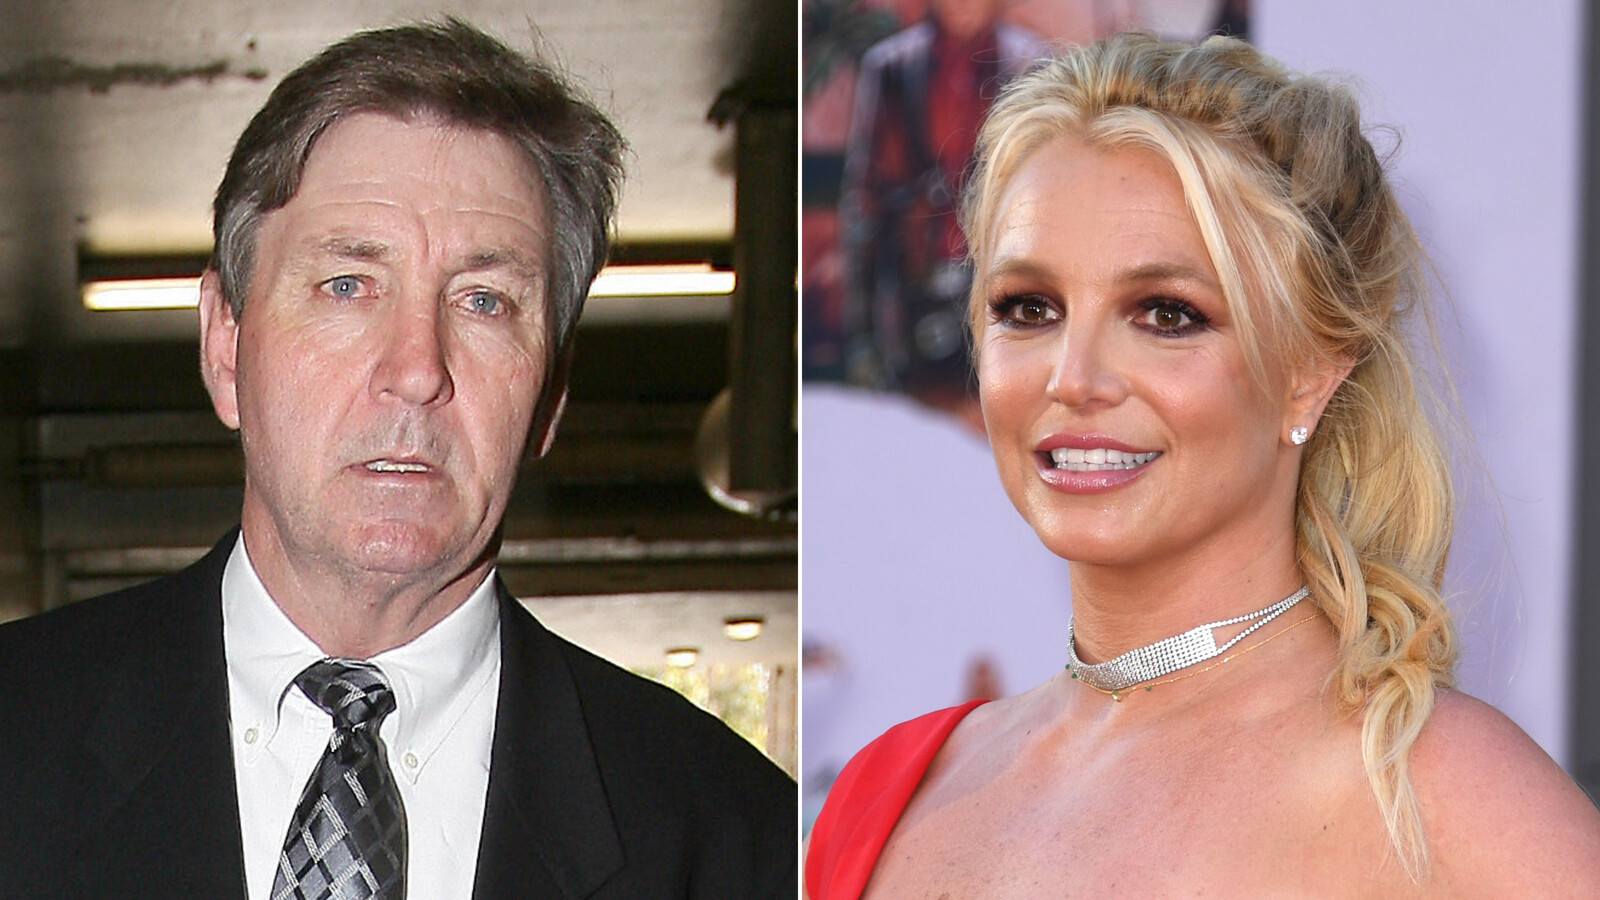 Attorney for Jamie Spears calls his suspension 'disappointing' and a 'loss' for Britney Spears